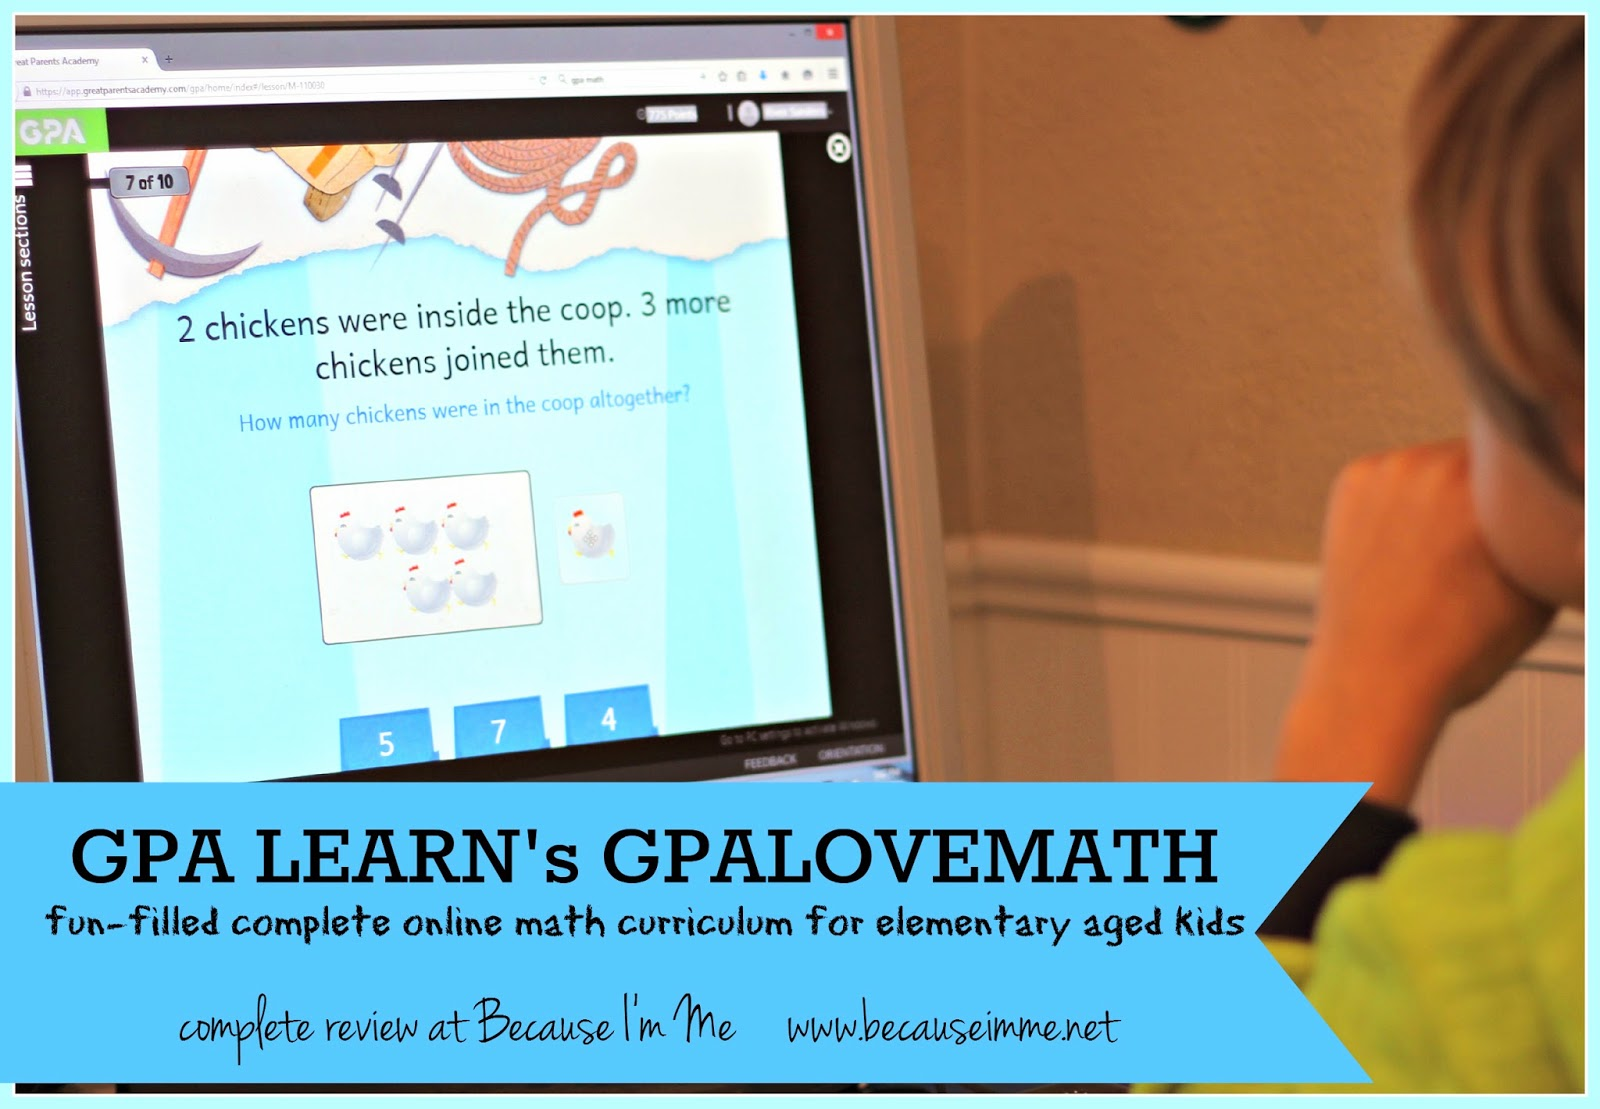 Because I'm Me review of GPA LEARN GPALOVEMATH, online math program for elementary aged home school kids